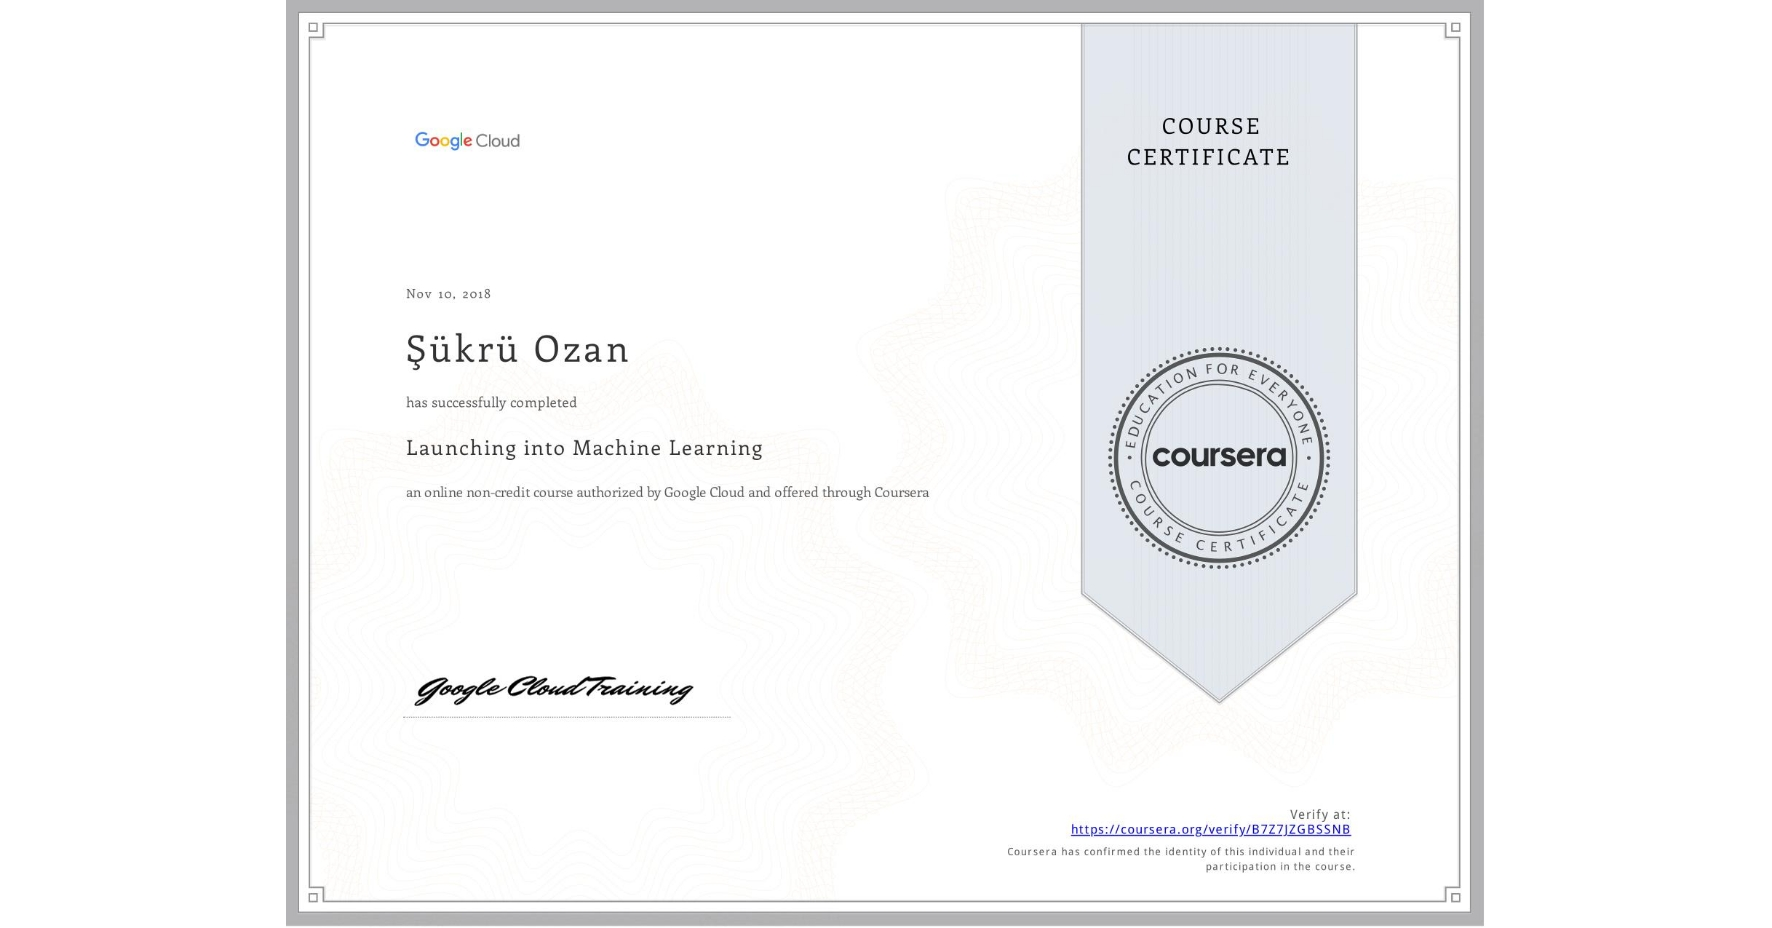 View certificate for Şükrü Ozan, Launching into Machine Learning, an online non-credit course authorized by Google Cloud and offered through Coursera